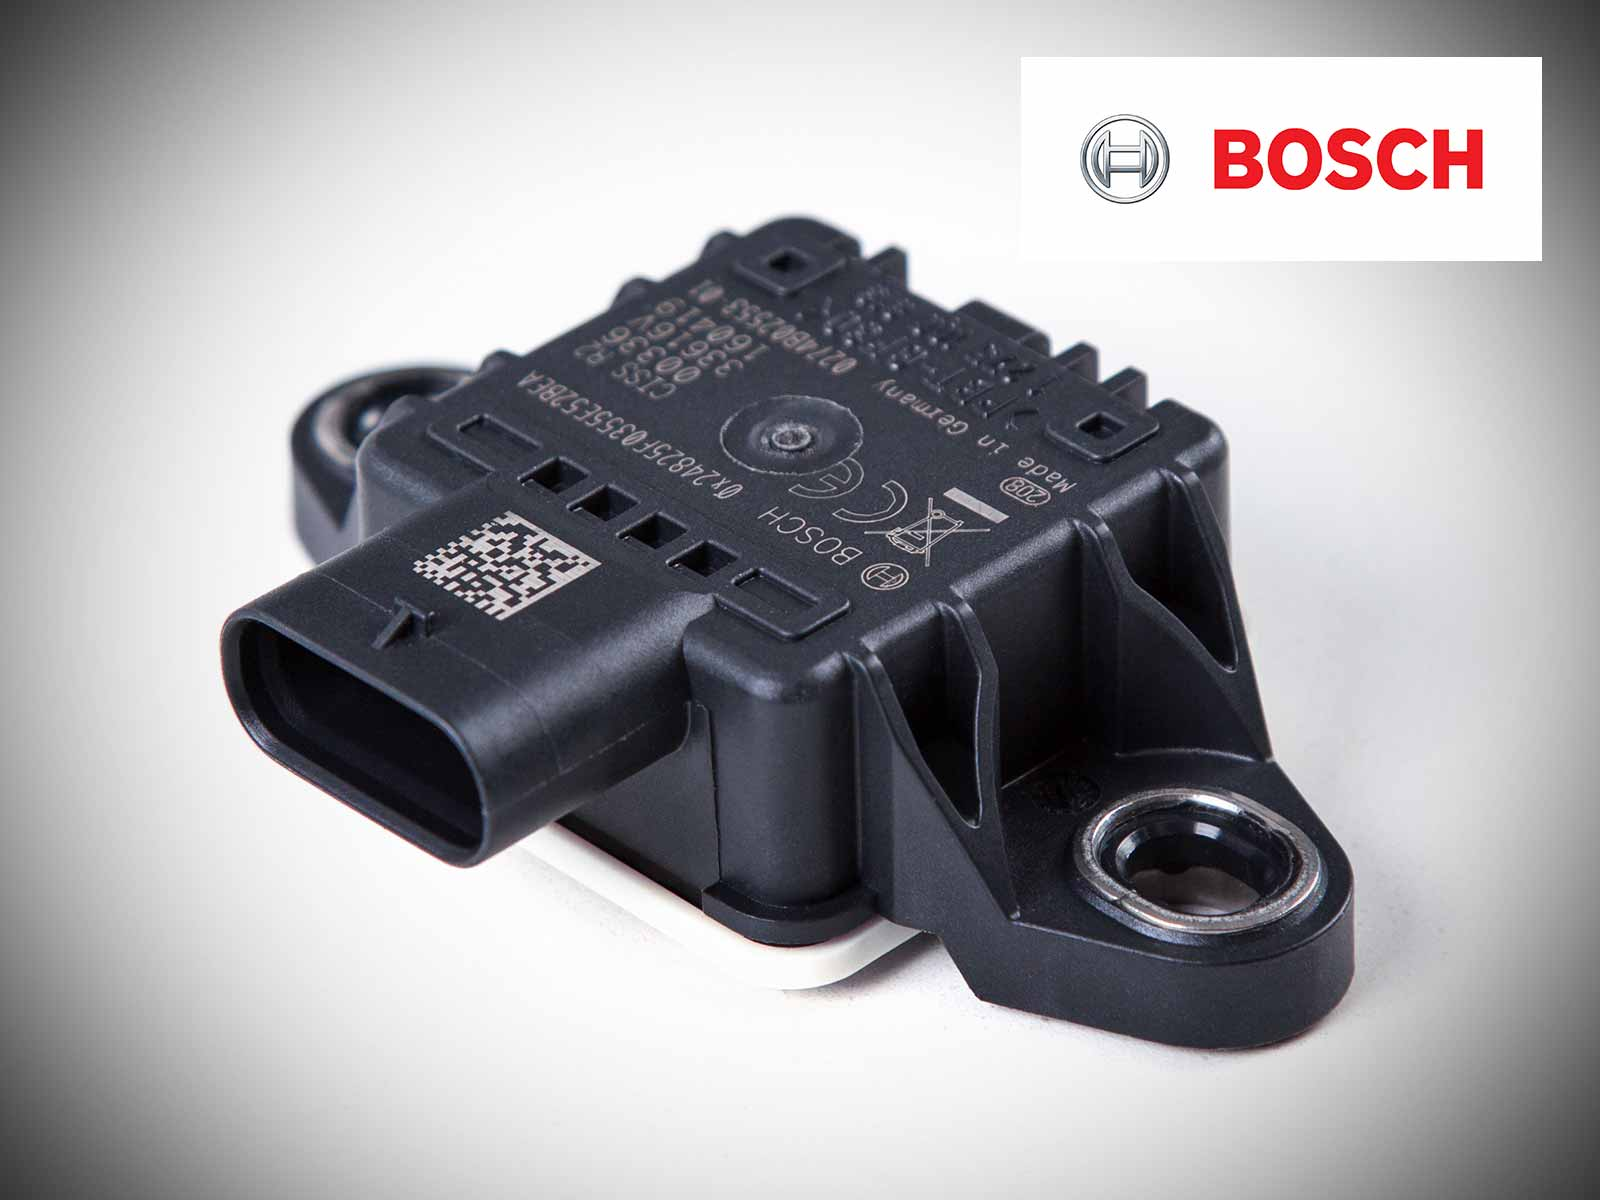 CISS - Connected Industrial Sensor Solution - Bluetooth Sensor von Bosch for Condition Monitoring for machines